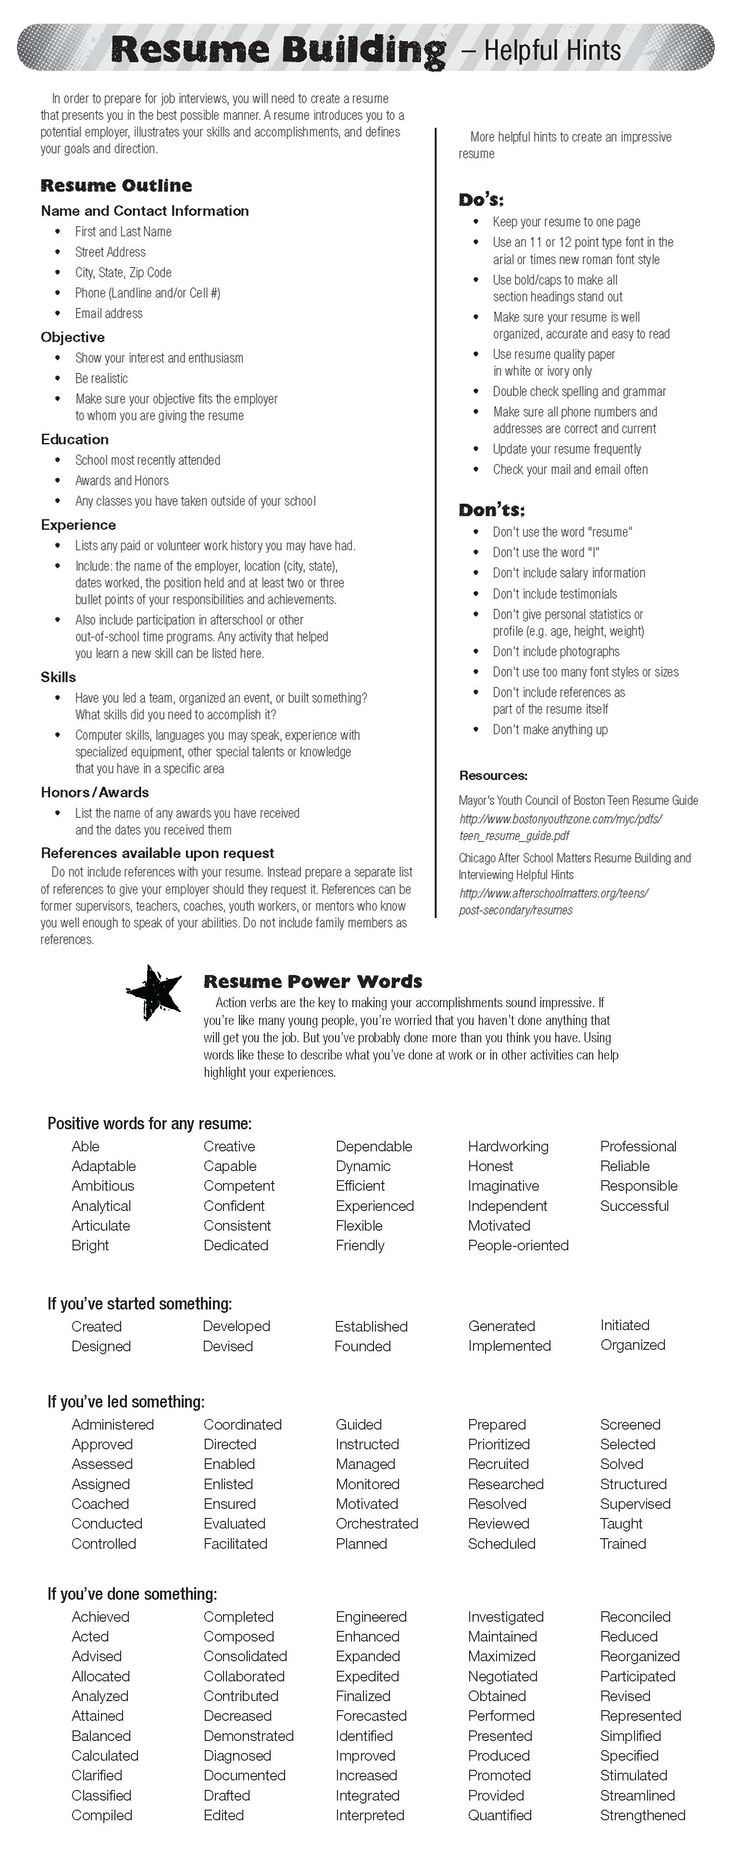 Opposenewapstandardsus  Unusual  Ideas About Resume On Pinterest  Cv Format Resume Cv And  With Magnificent  Ideas About Resume On Pinterest  Cv Format Resume Cv And Resume Templates With Astounding Rules For Resumes Also Resume Magna Cum Laude In Addition Cna Objective Resume Examples And Online Resume Services As Well As Resumes For Highschool Students Additionally Student Resumes Samples From Pinterestcom With Opposenewapstandardsus  Magnificent  Ideas About Resume On Pinterest  Cv Format Resume Cv And  With Astounding  Ideas About Resume On Pinterest  Cv Format Resume Cv And Resume Templates And Unusual Rules For Resumes Also Resume Magna Cum Laude In Addition Cna Objective Resume Examples From Pinterestcom